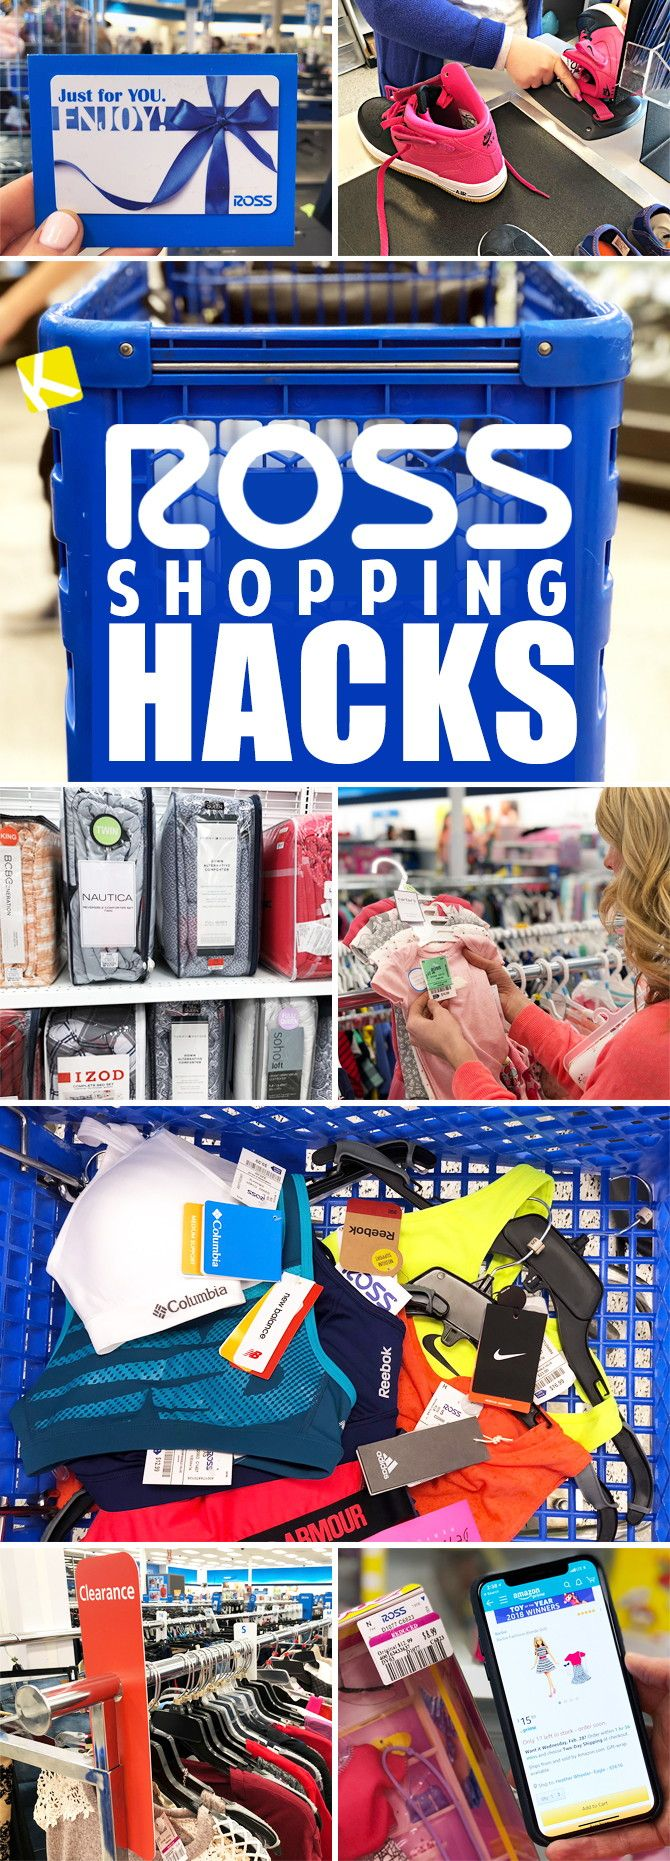 Love Ross We Shopped And Scoured And Interviewed Whoever Would Talk To Usa A All To Get The Best Tips For How To Save Shopping Hacks Saving Money Ross Store